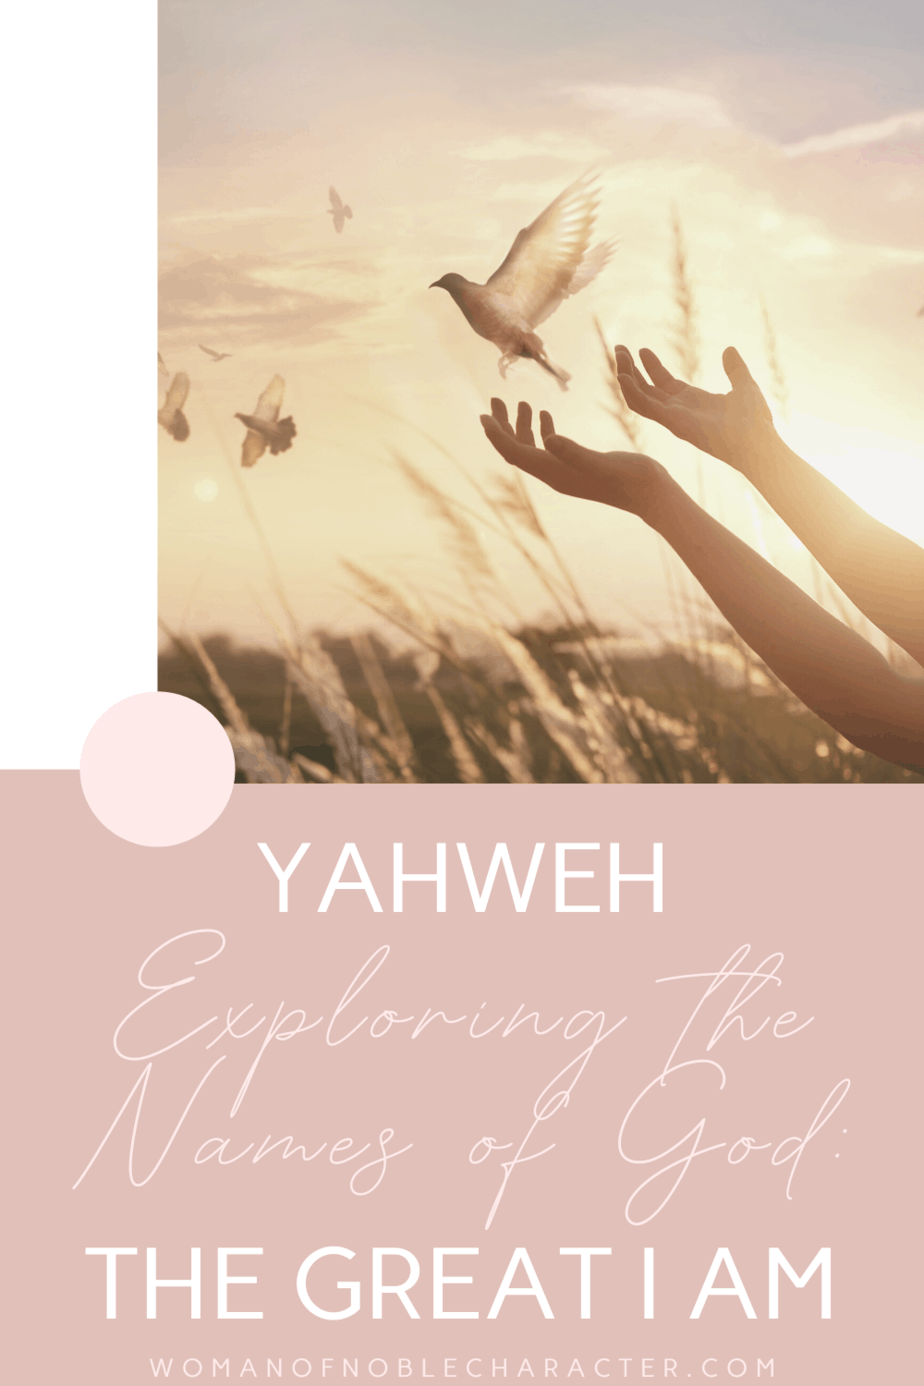 An image of a dove being released by a person's hands in a field at sunset and text that says Yahweh I Am Exploring The Names Of God